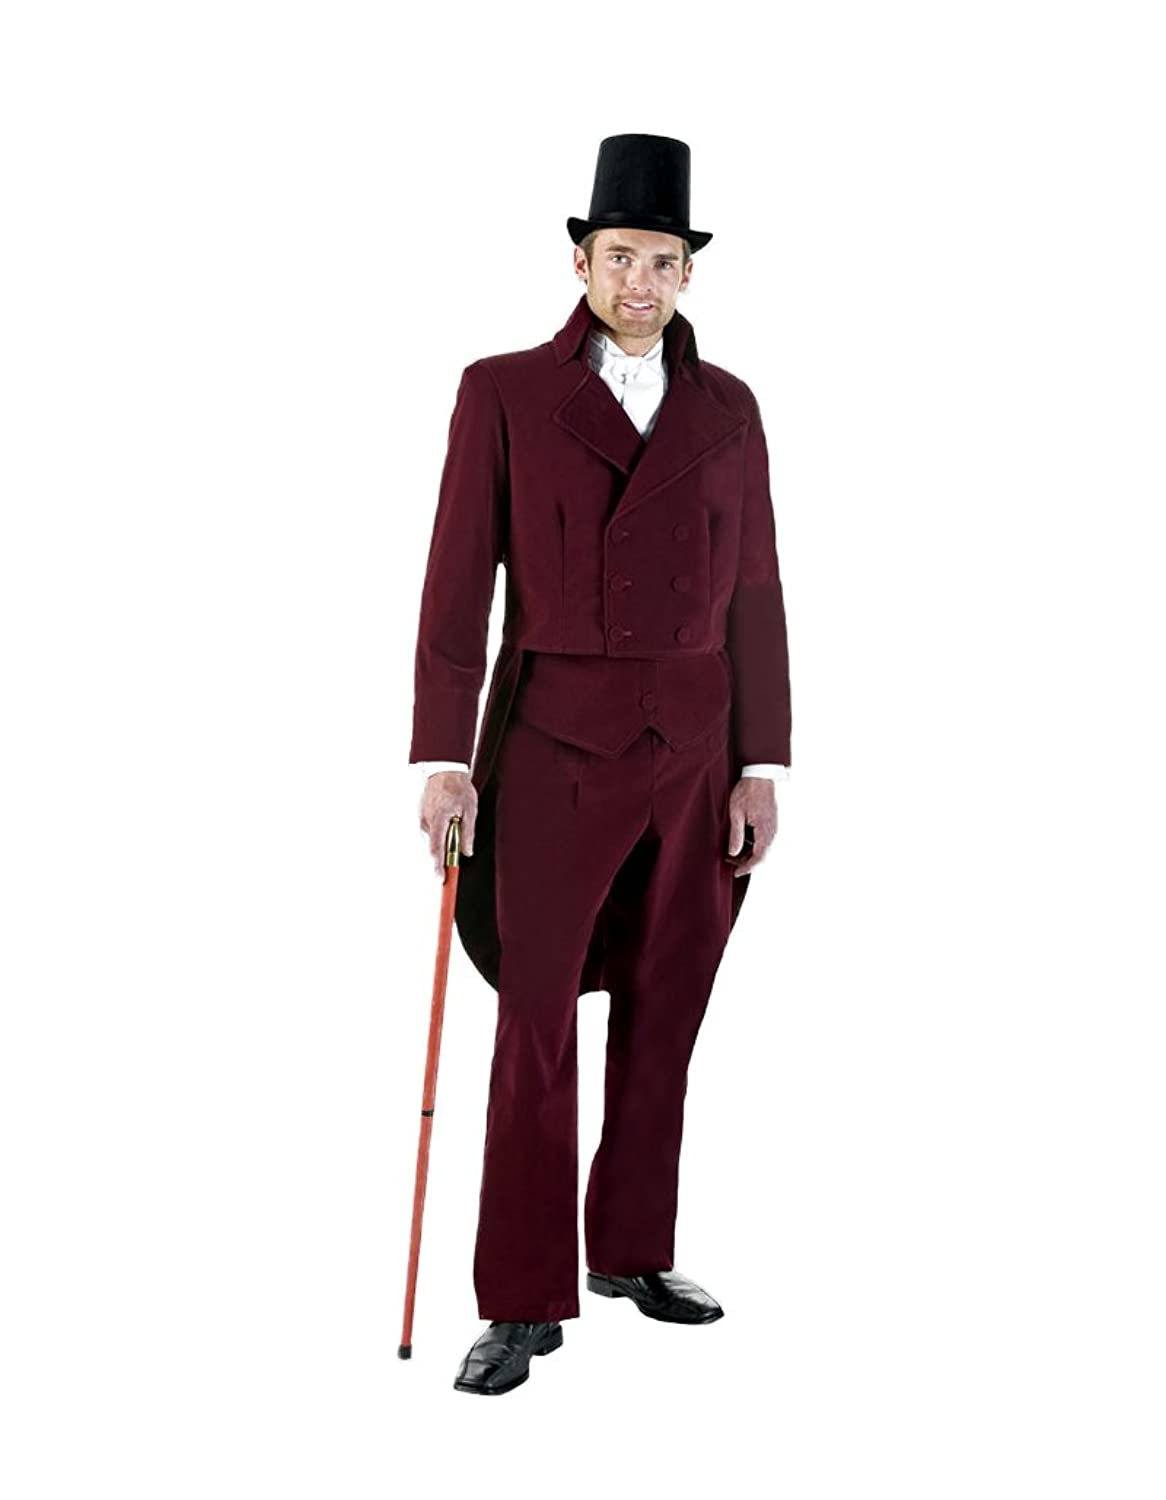 Men's Steampunk Clothing, Costumes, Fashion Tabis Characters Mens Charles Dickens Caroler Tail Suit Theater Costume  AT vintagedancer.com